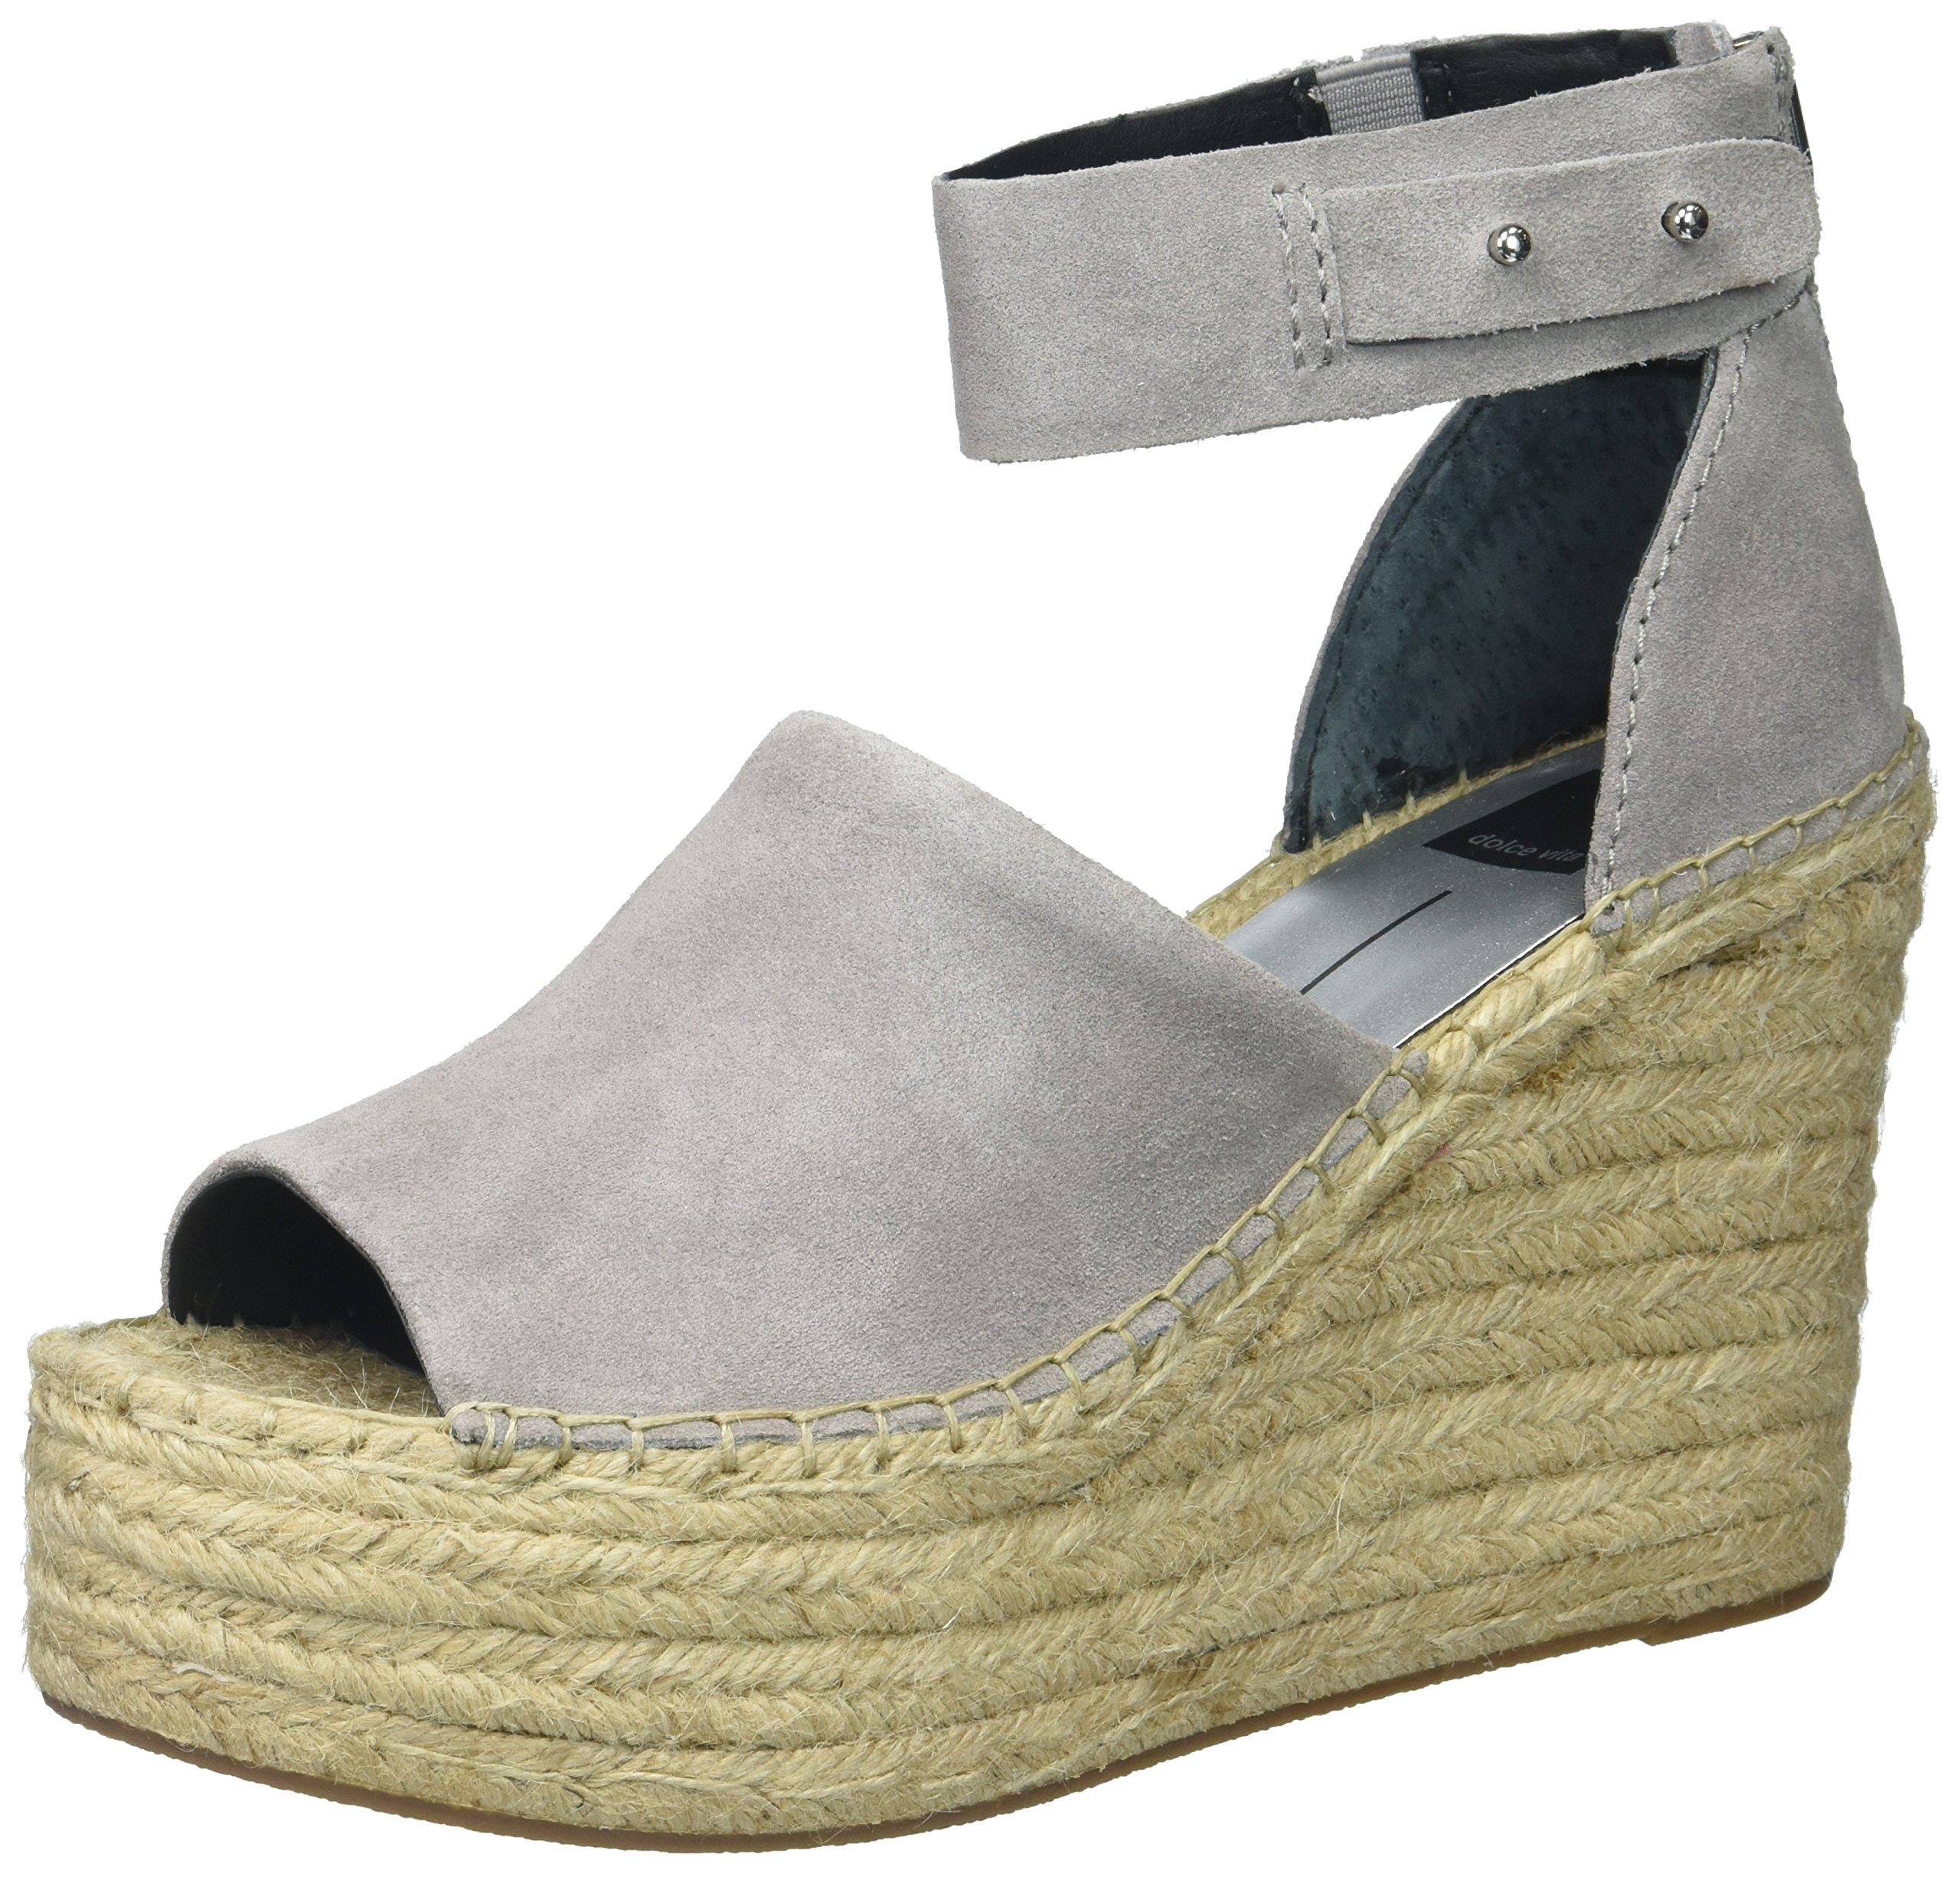 Dolce Vita Women's Straw Wedge Sandal, Smoke Suede, 7.5 Medium US